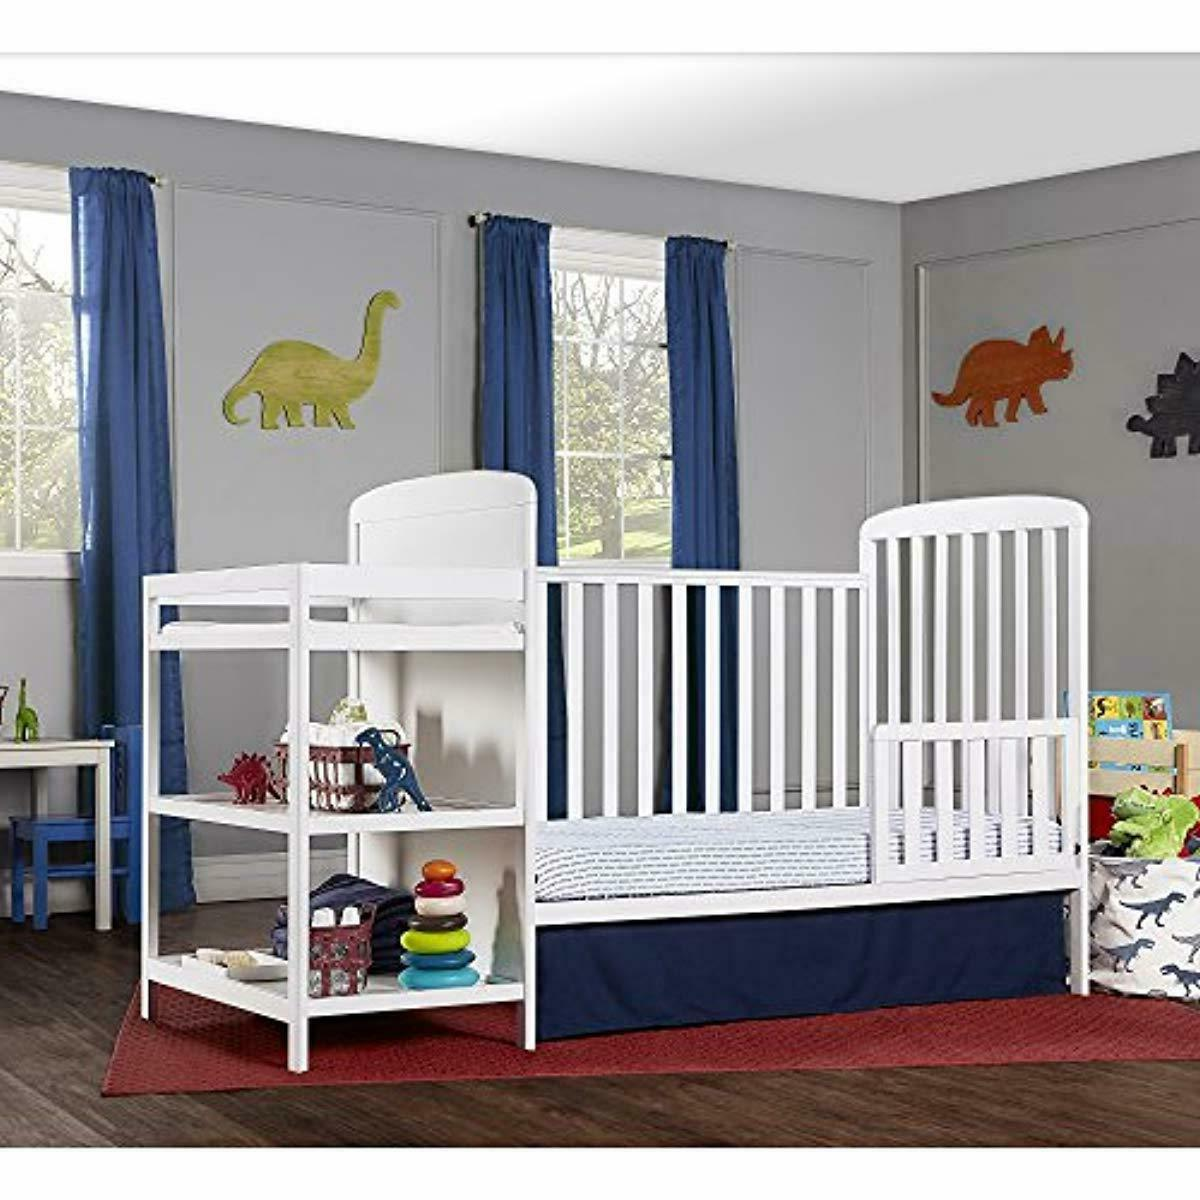 4 Size Crib and Table Combo size bed